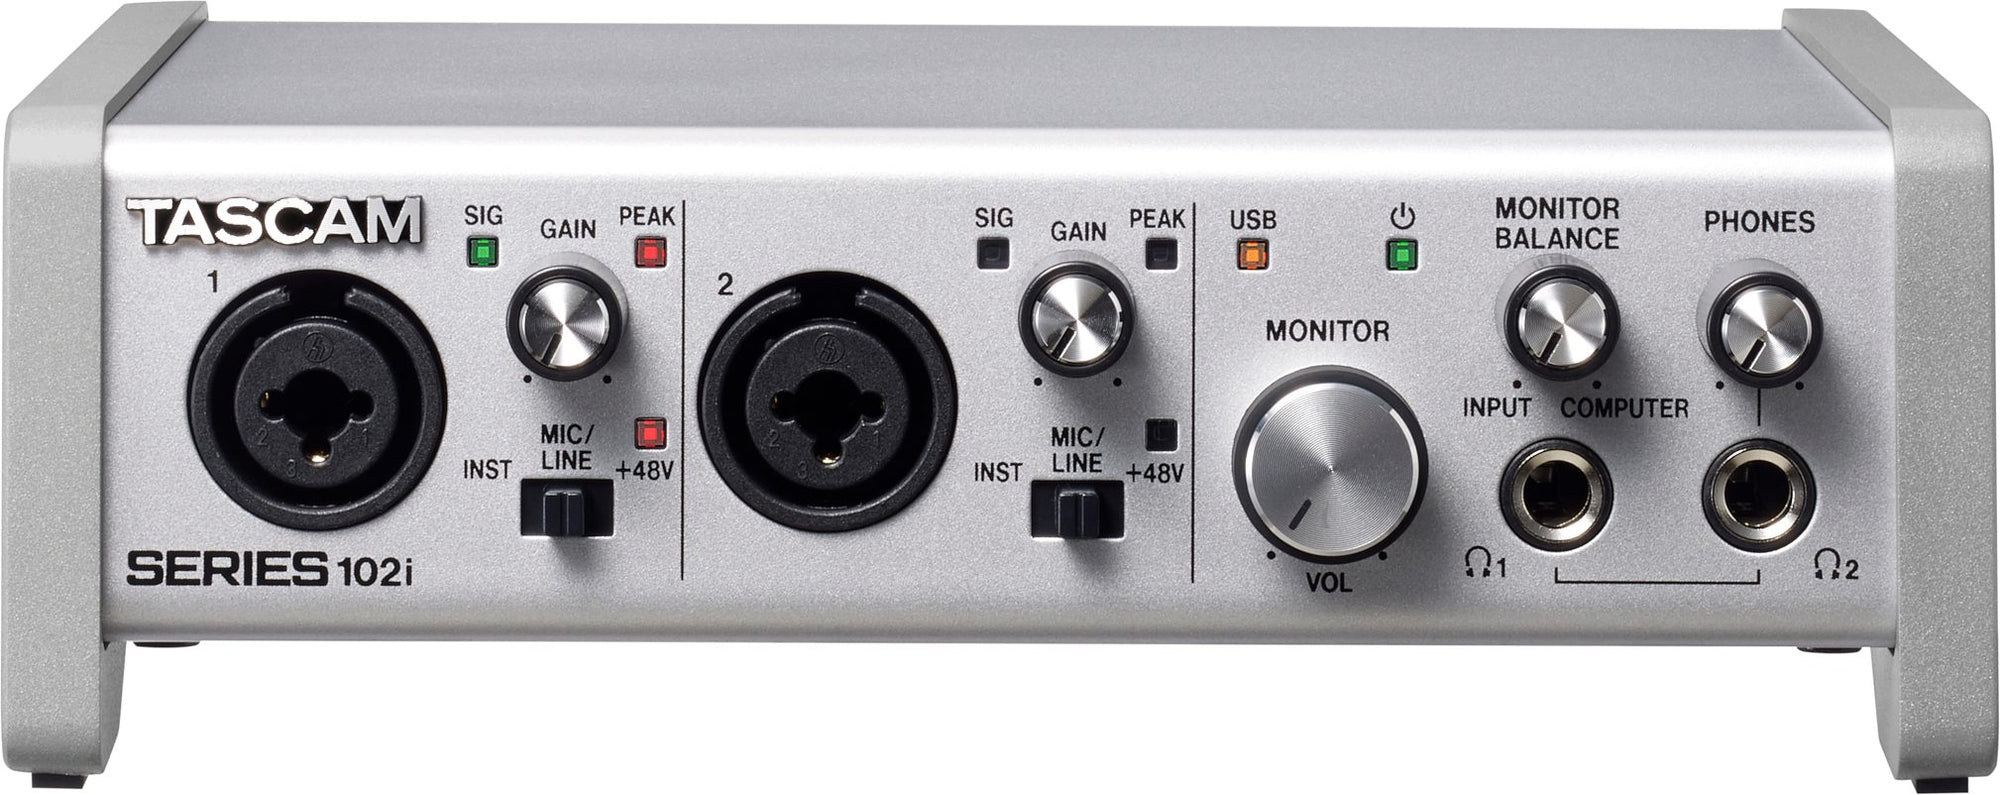 Tascam Series 102i USB Audio Interface